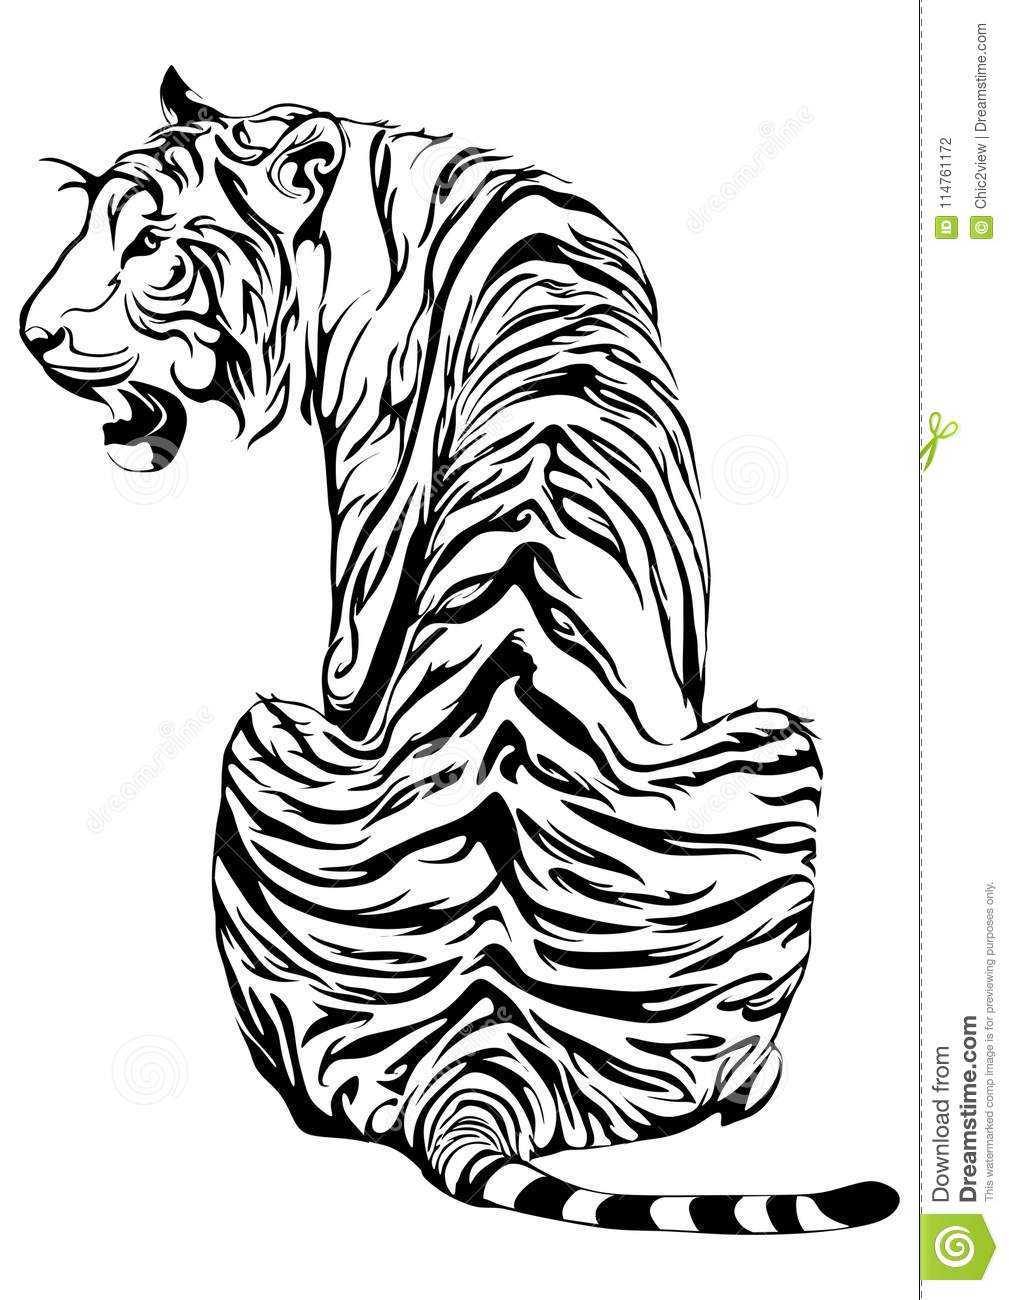 Tiger Sit Down And Look Back Design For Tribal Tattoo Stock